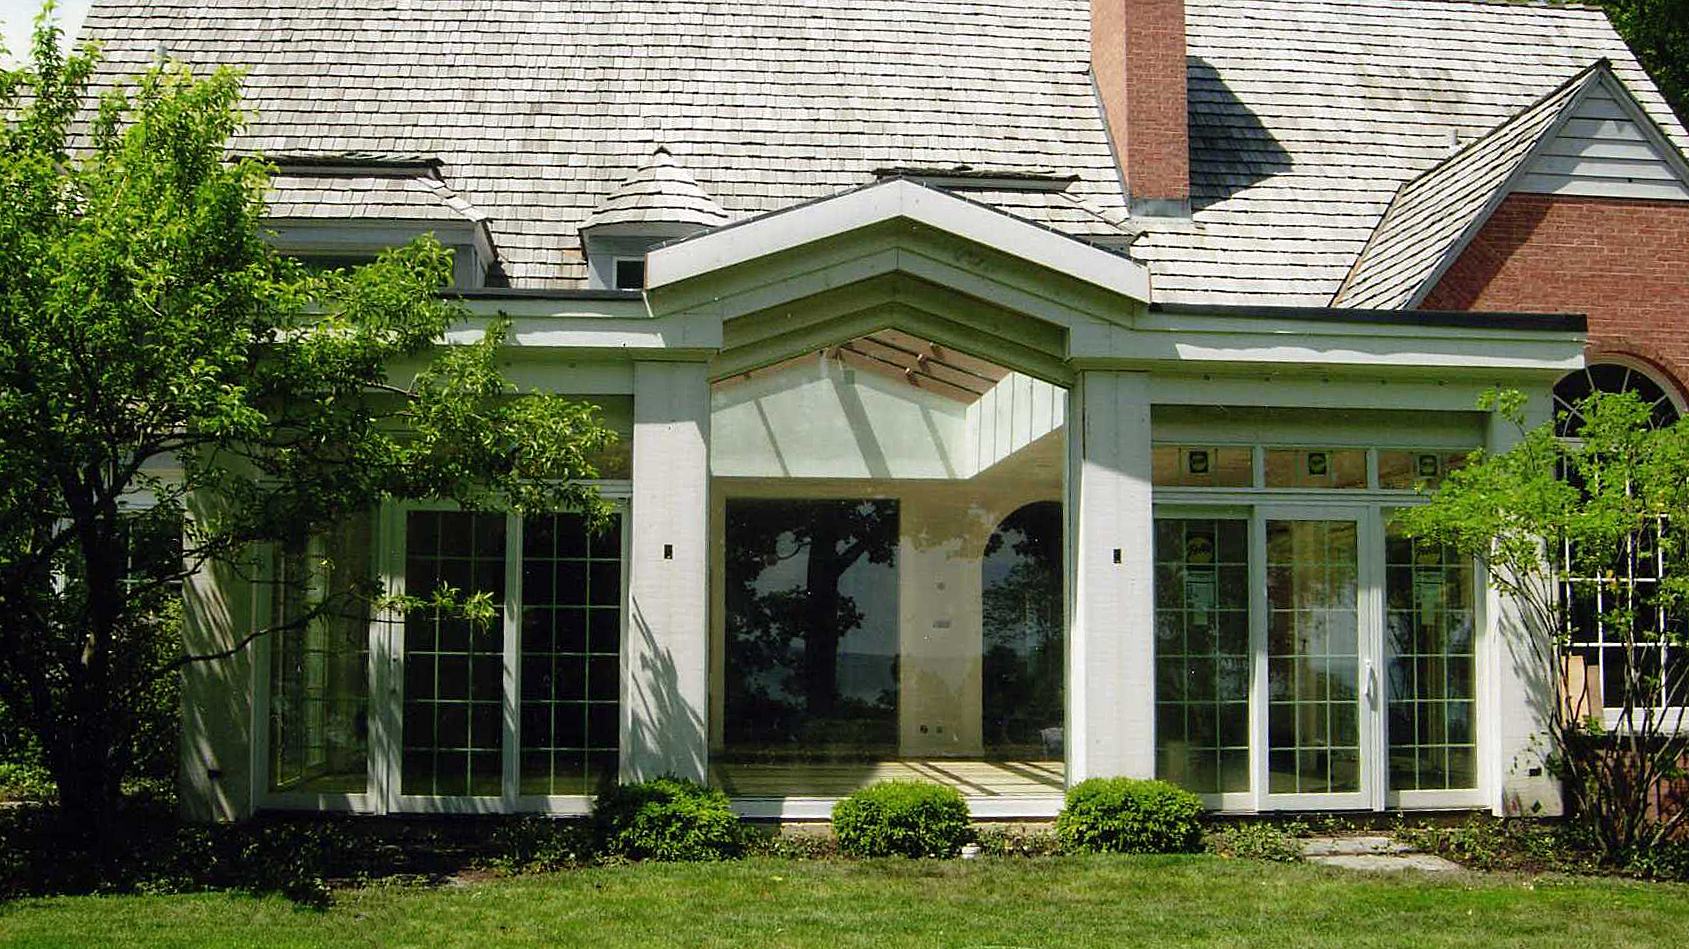 Irregular gable style curtain wall with outswing doors.